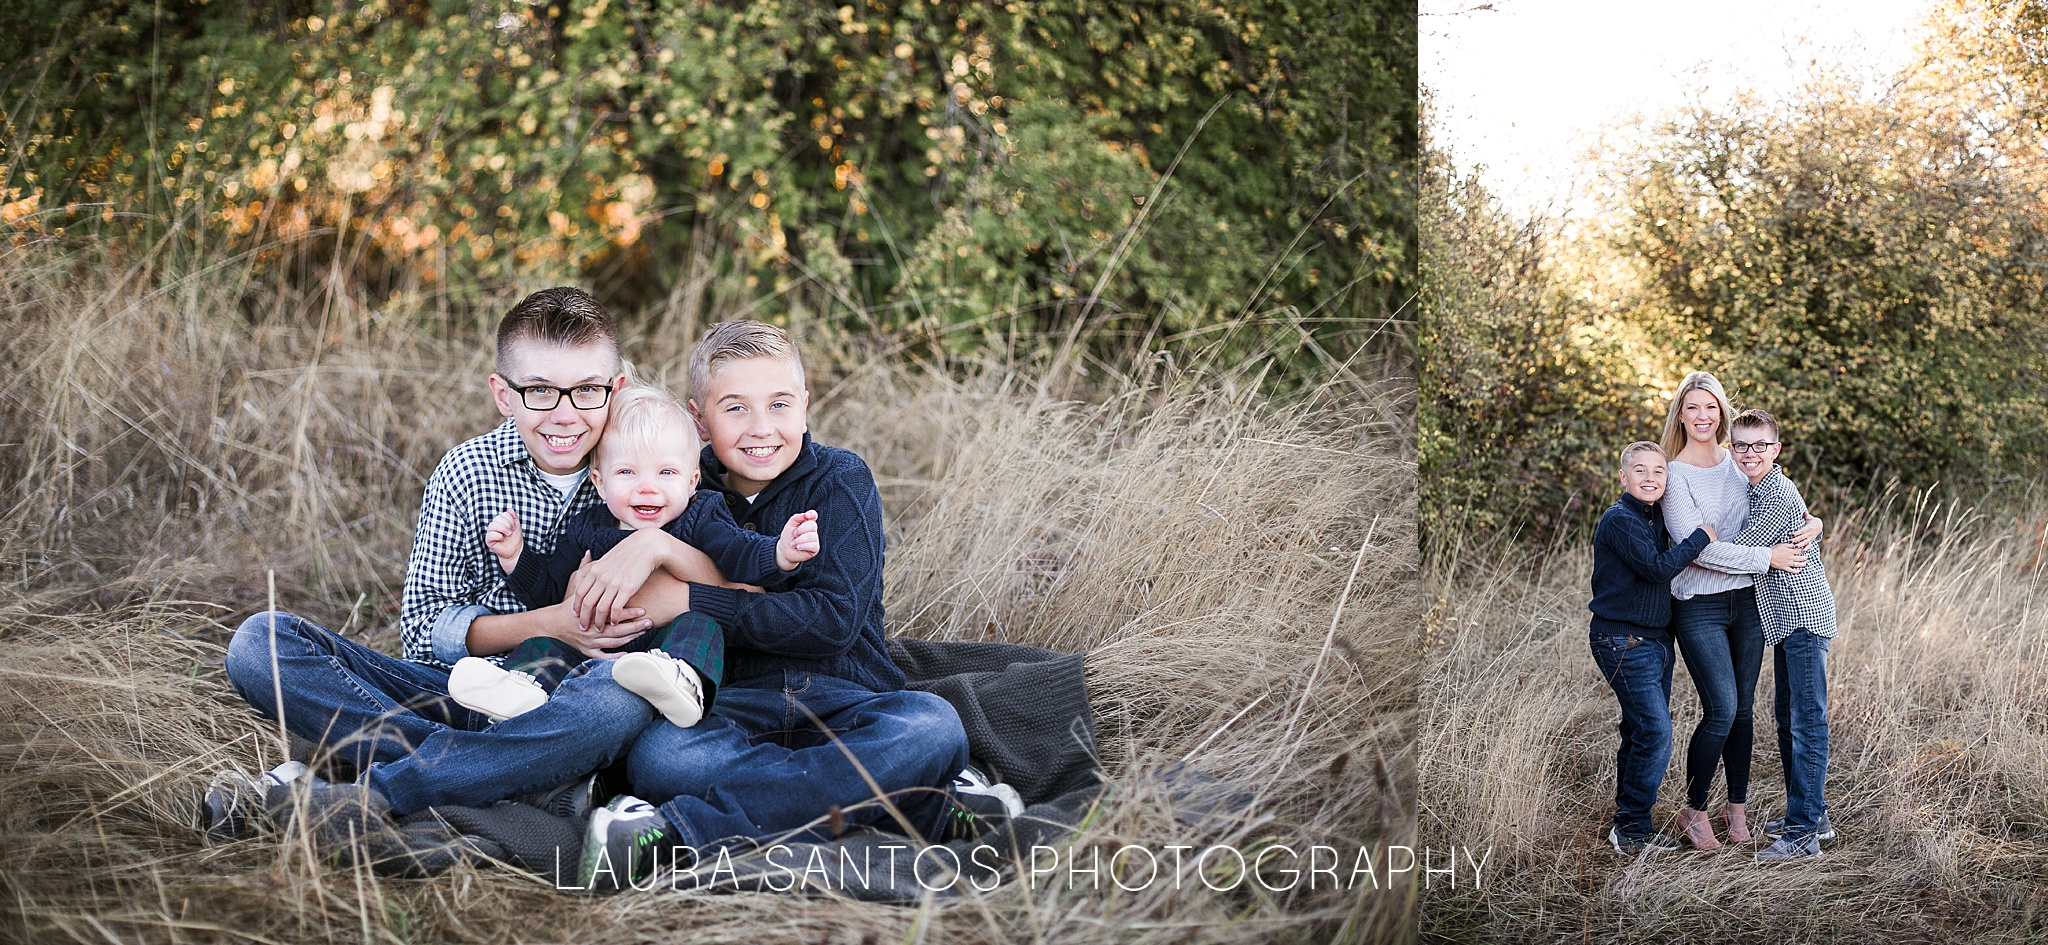 Laura Santos Photography Portland Oregon Family Photographer_0621.jpg